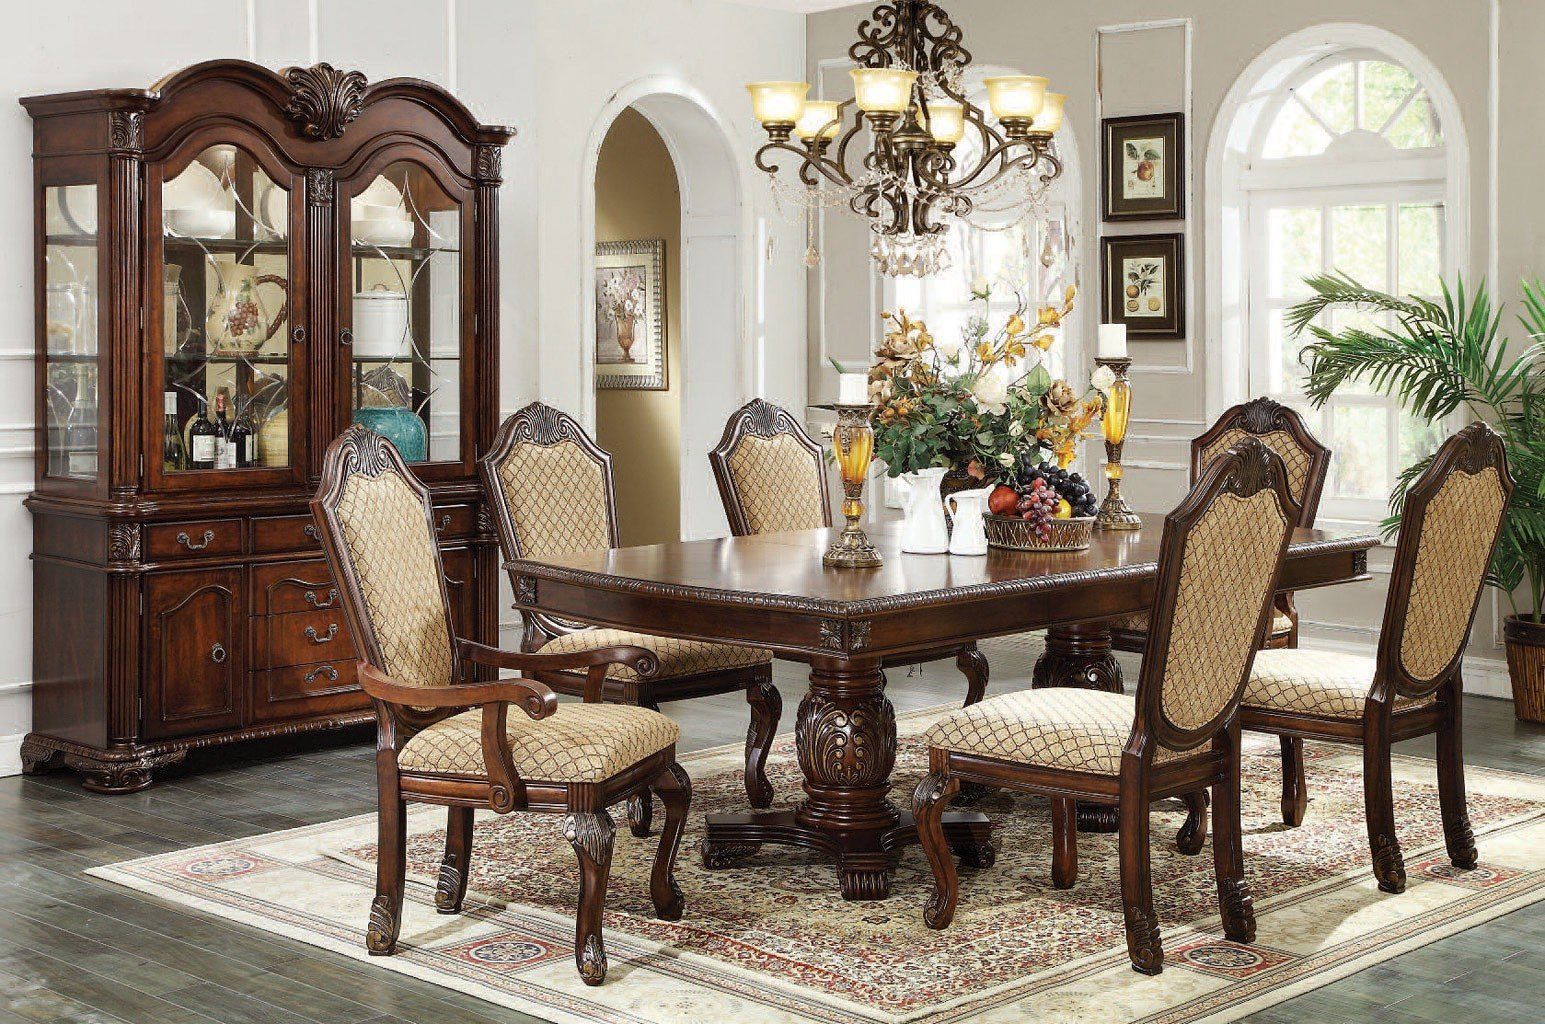 Chateau De Ville Dining Room Set Espresso Acme Furniture